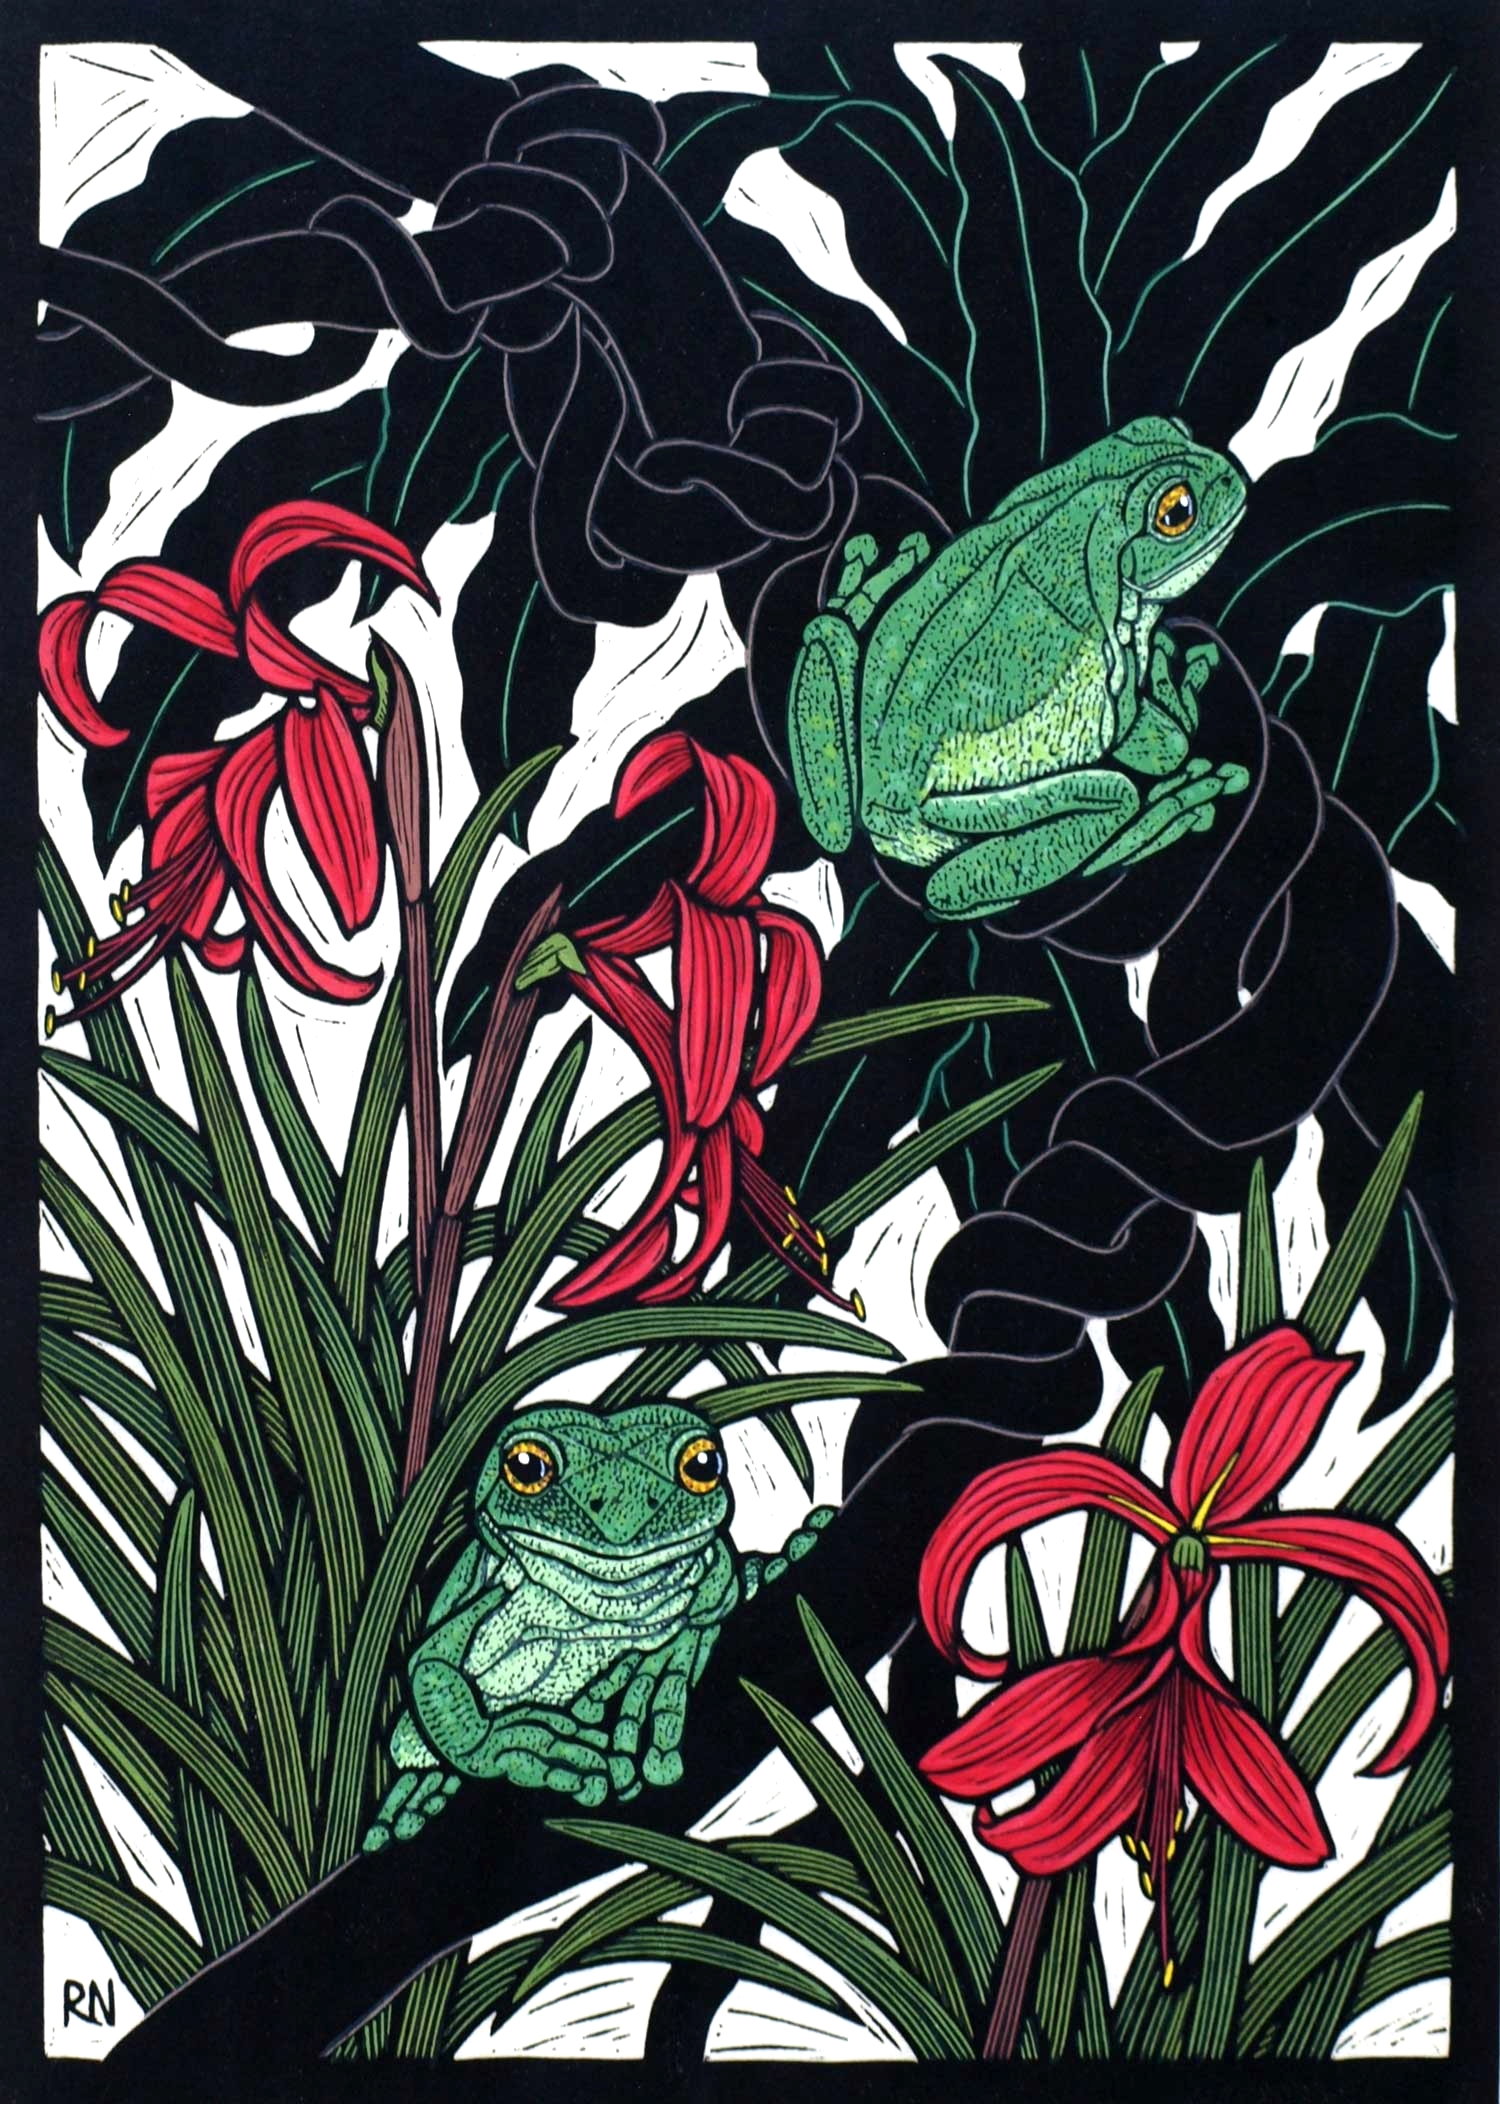 GREEN TREE FROG  49 X 35 CM EDITION OF 50  HAND COLOURED LINOCUT ON HANDMADE JAPANESE PAPER  $1,100